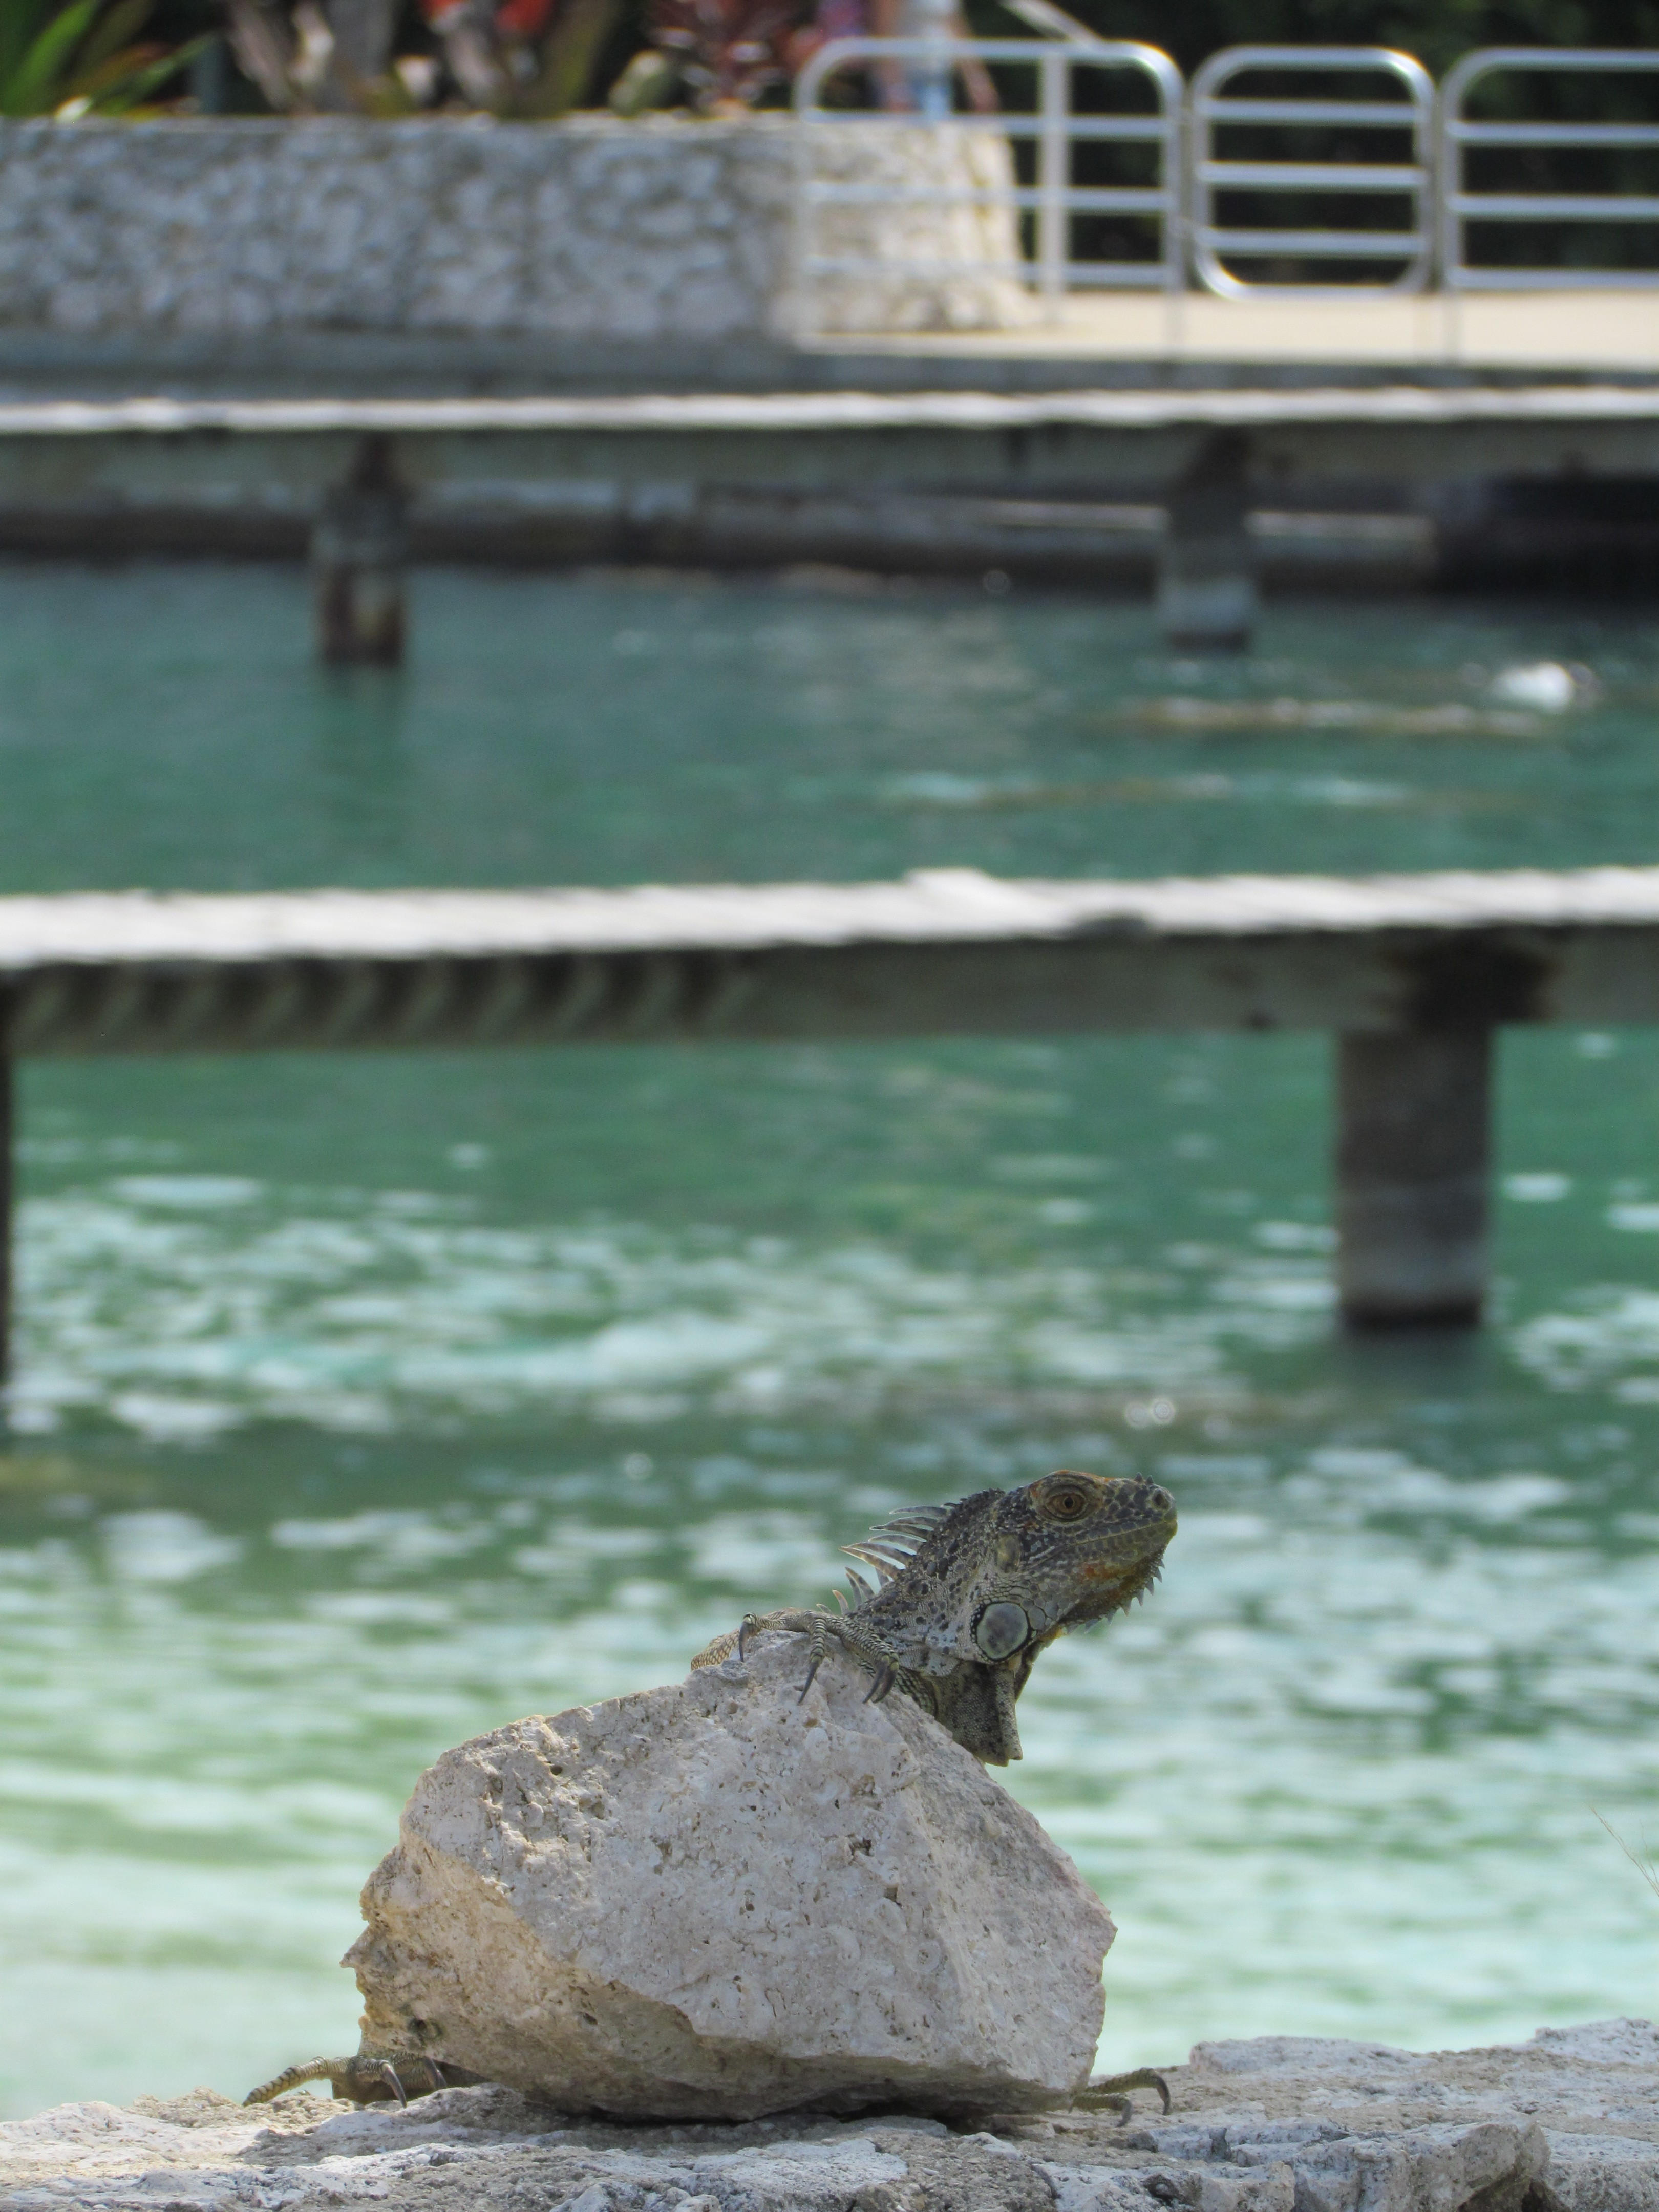 Iguana on a rock at the Turtle Farm in Grand Cayman, Cayman Islands